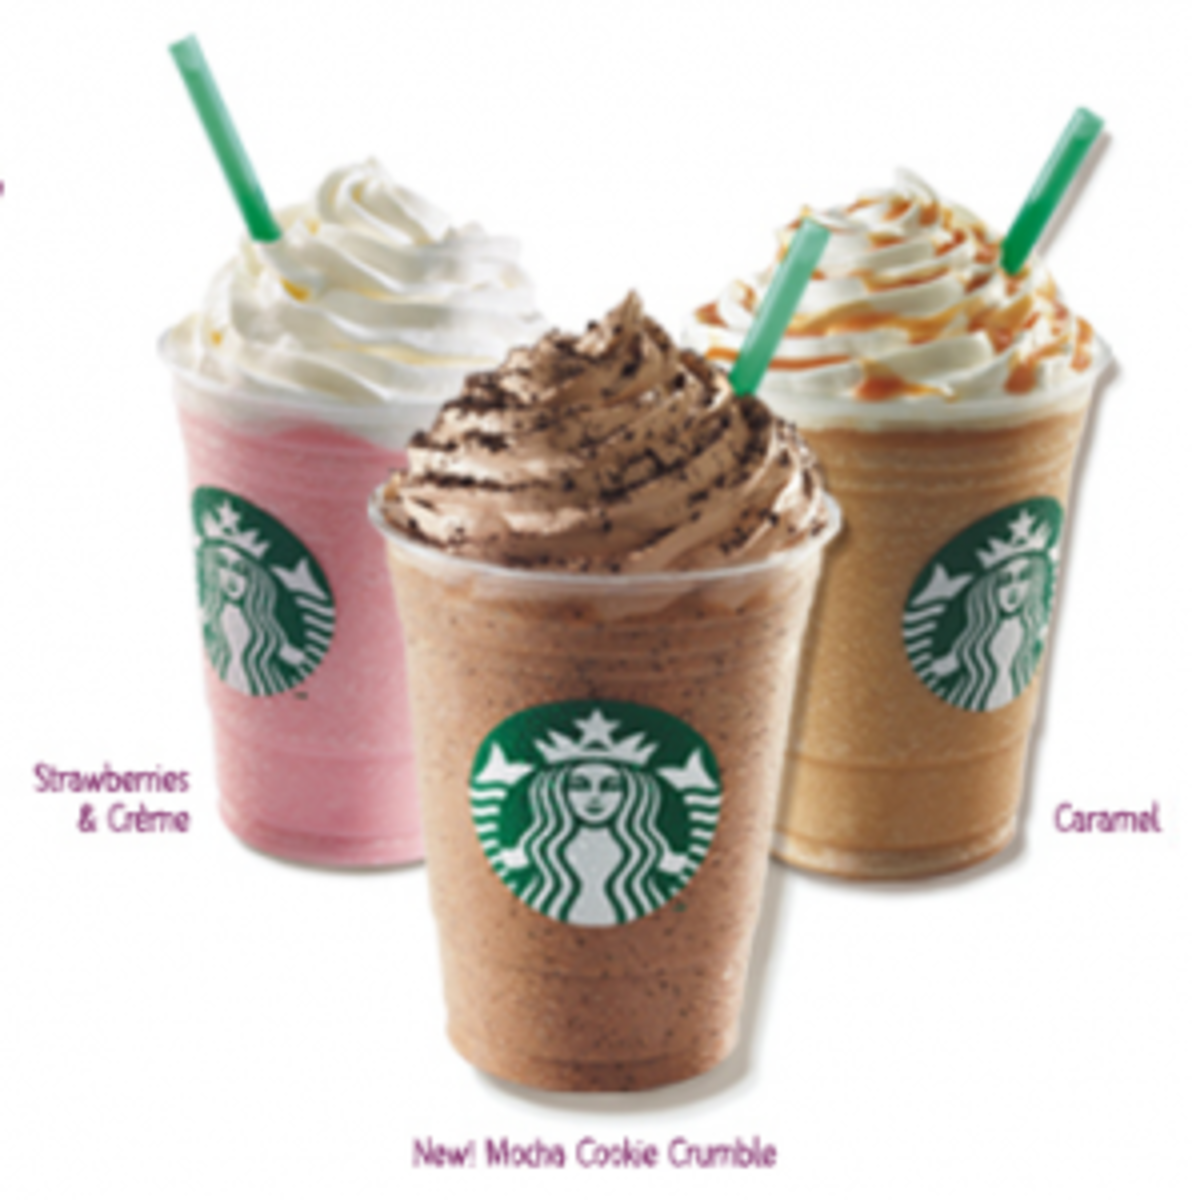 starbucks-secret-menu-a-mission-of-discovery-and-inquisition